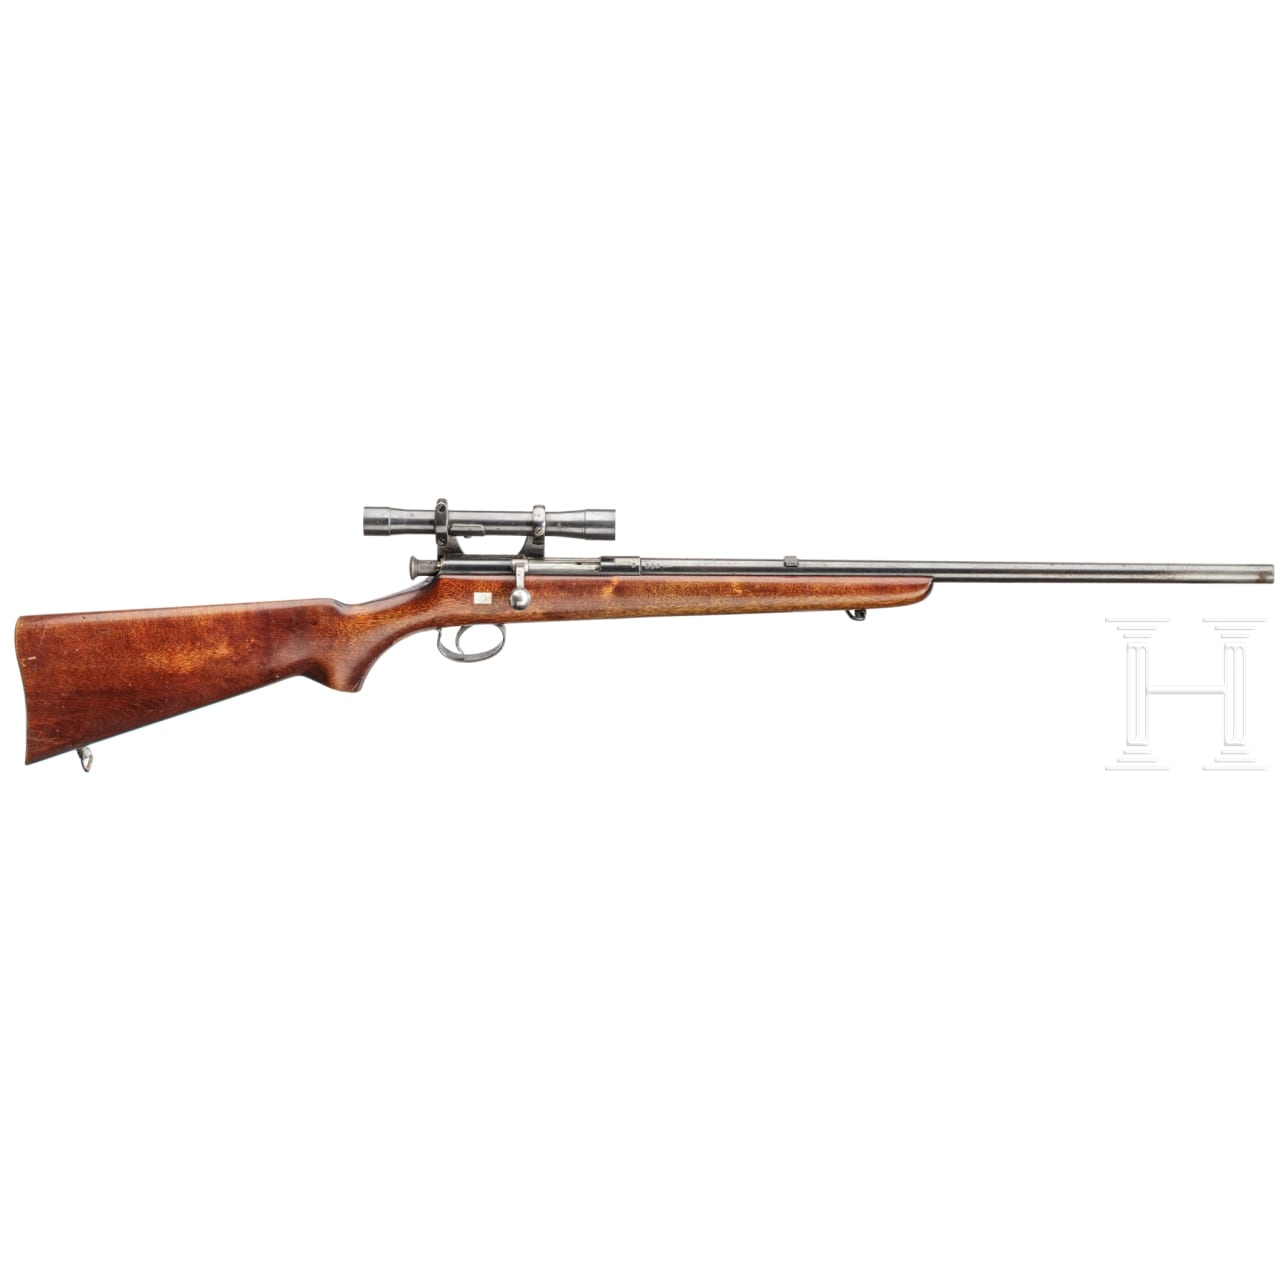 B.S.A. Sportsman with scope